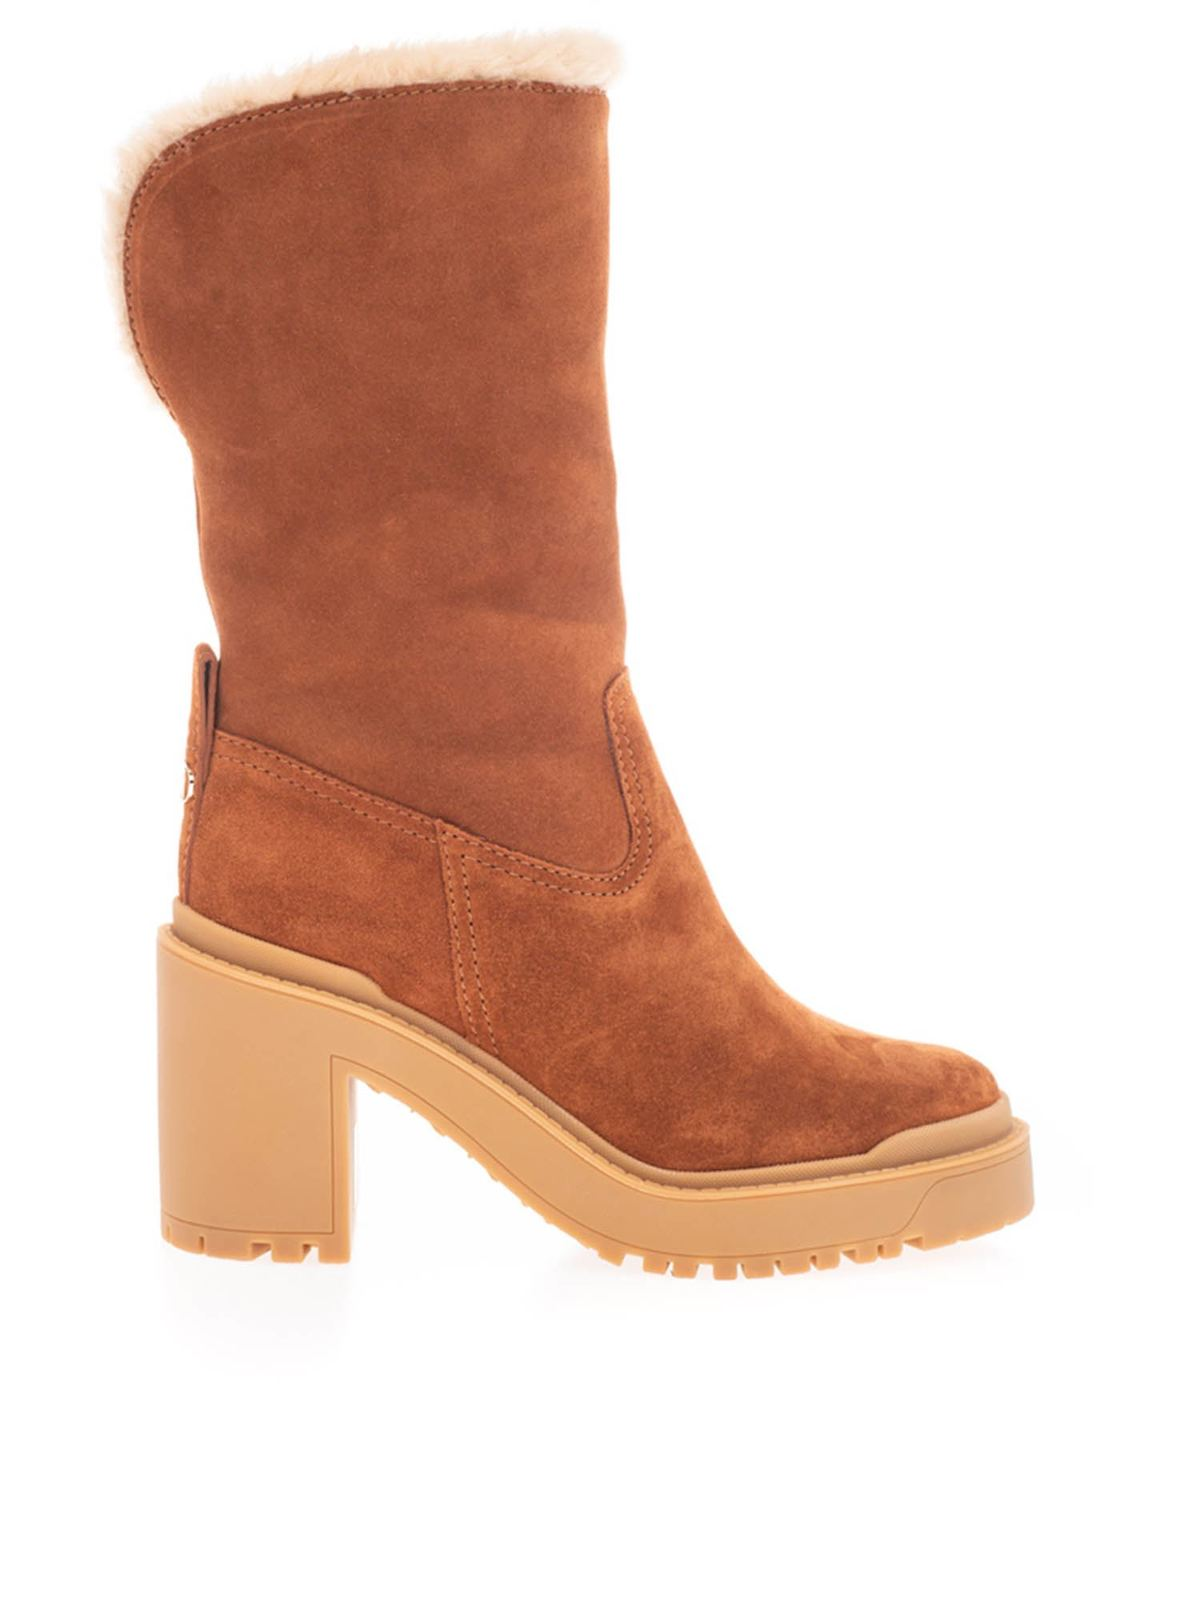 VALENTINO SHEEPSKIN ANKLE BOOTS IN BROWN